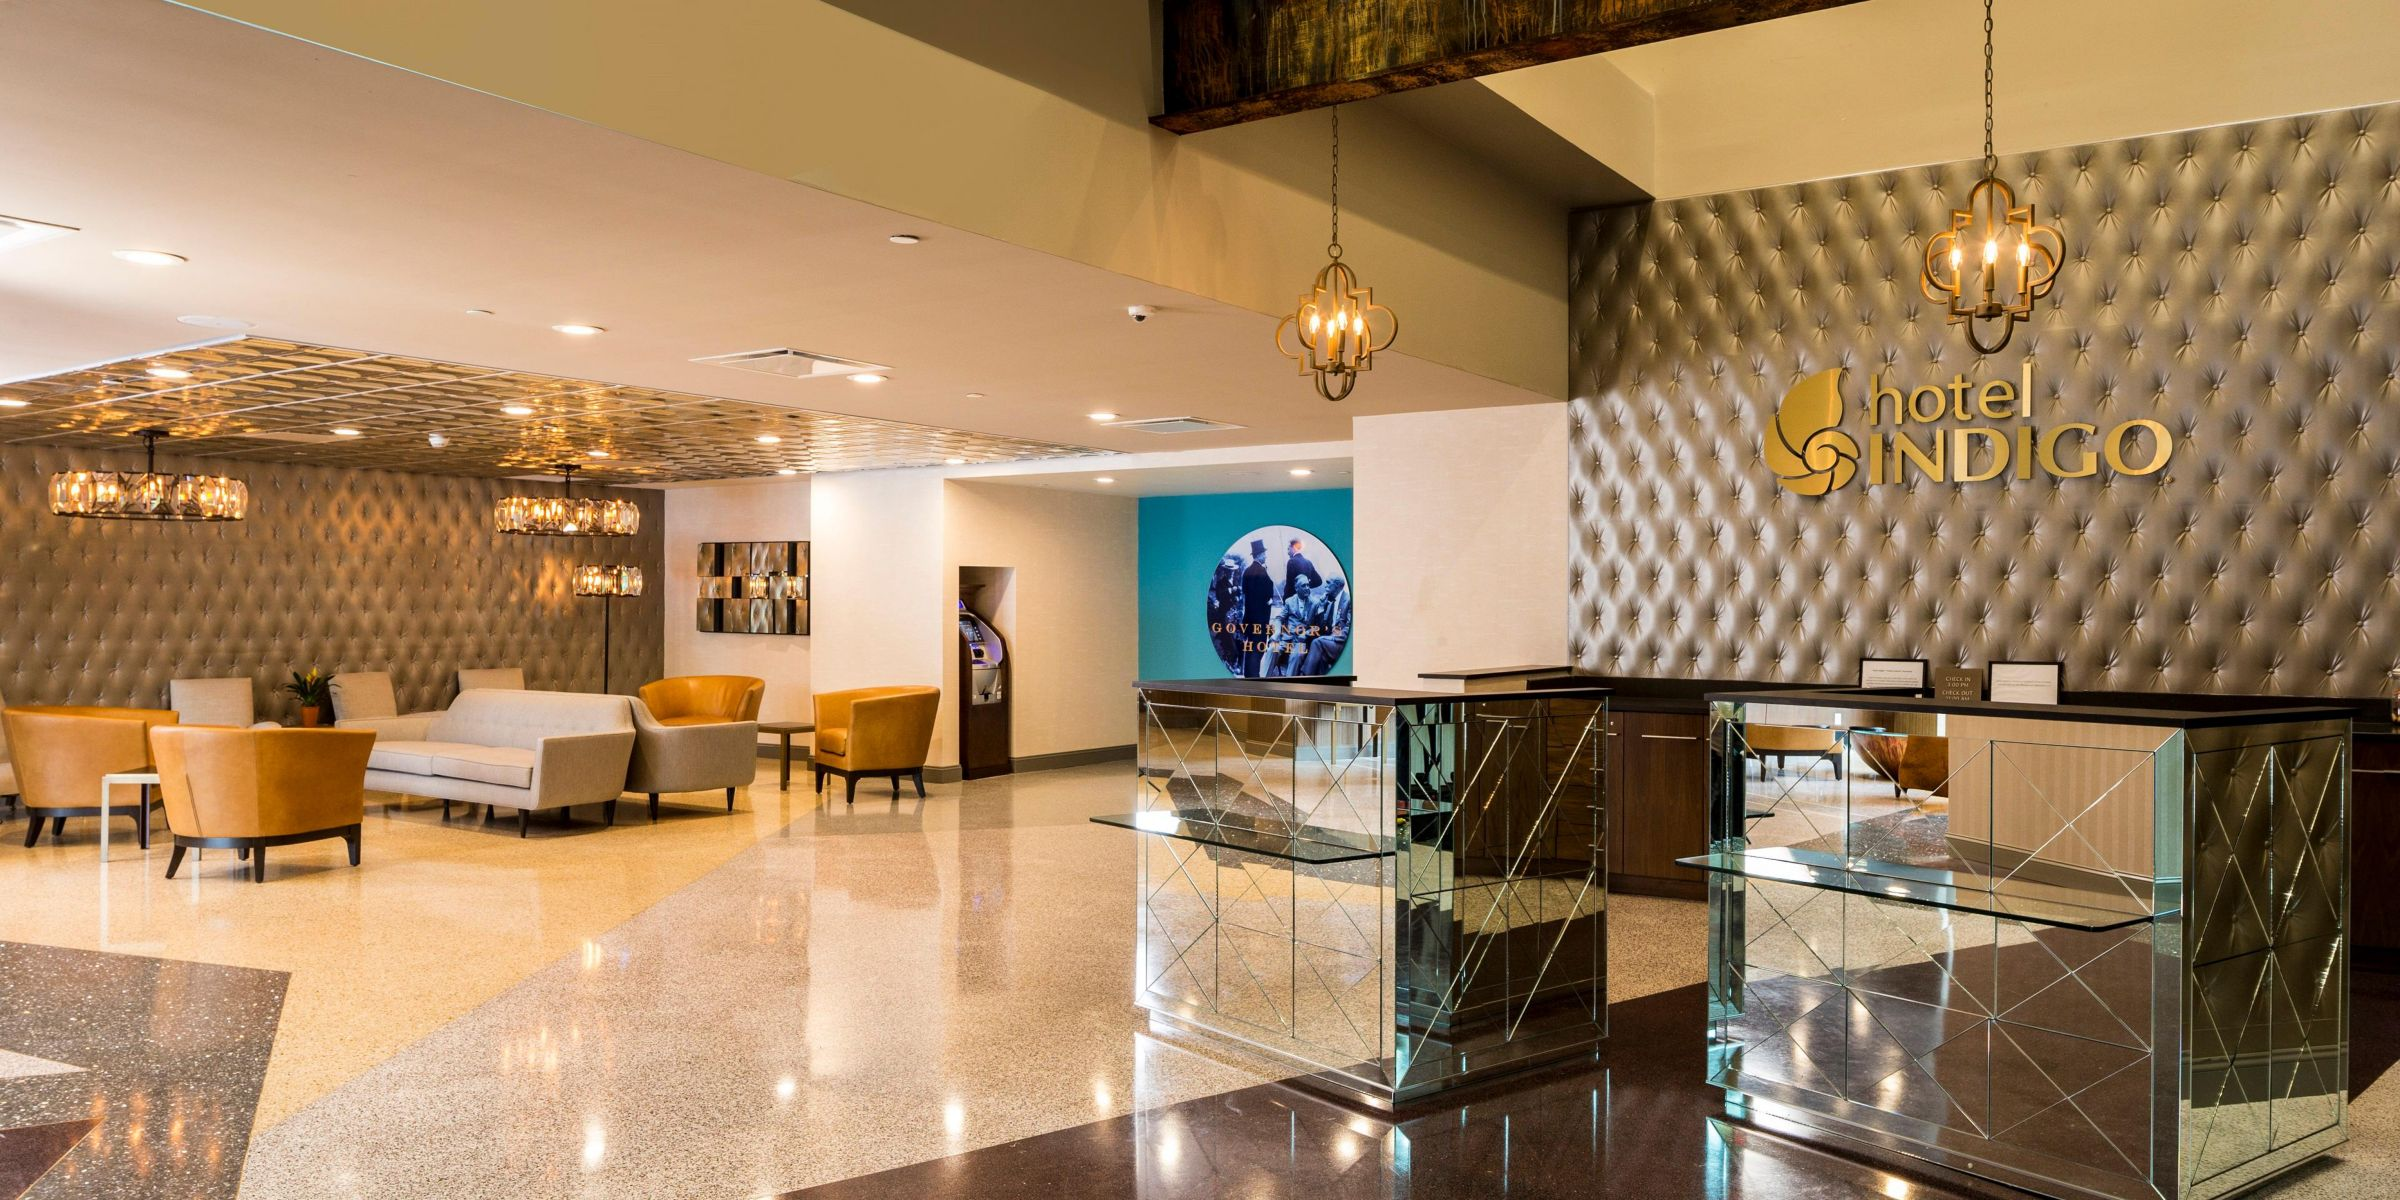 Pittsburgh hotels hotel indigo east liberty in interior for Interior design pittsburgh